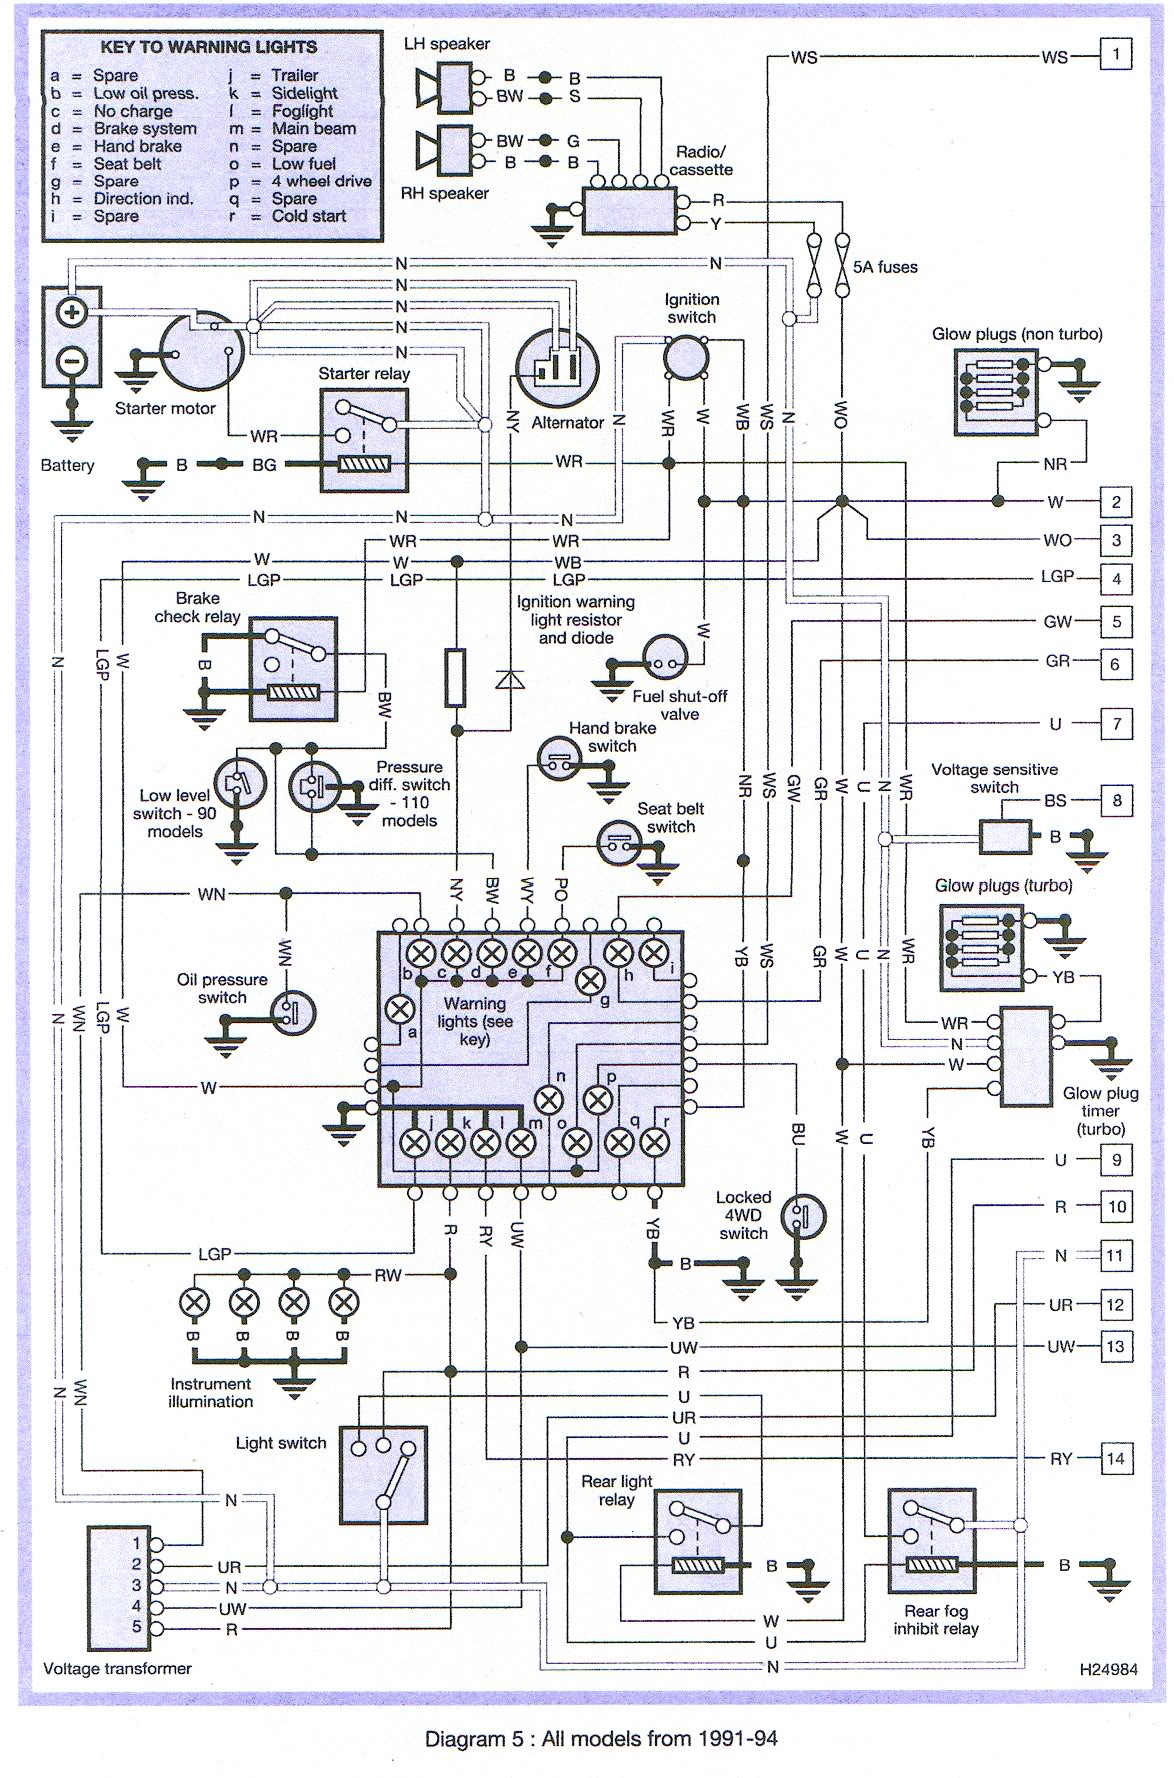 Light Wiring Diagram 110 Auto Electrical Defender2net View Topic In Car How To Defender2 Net